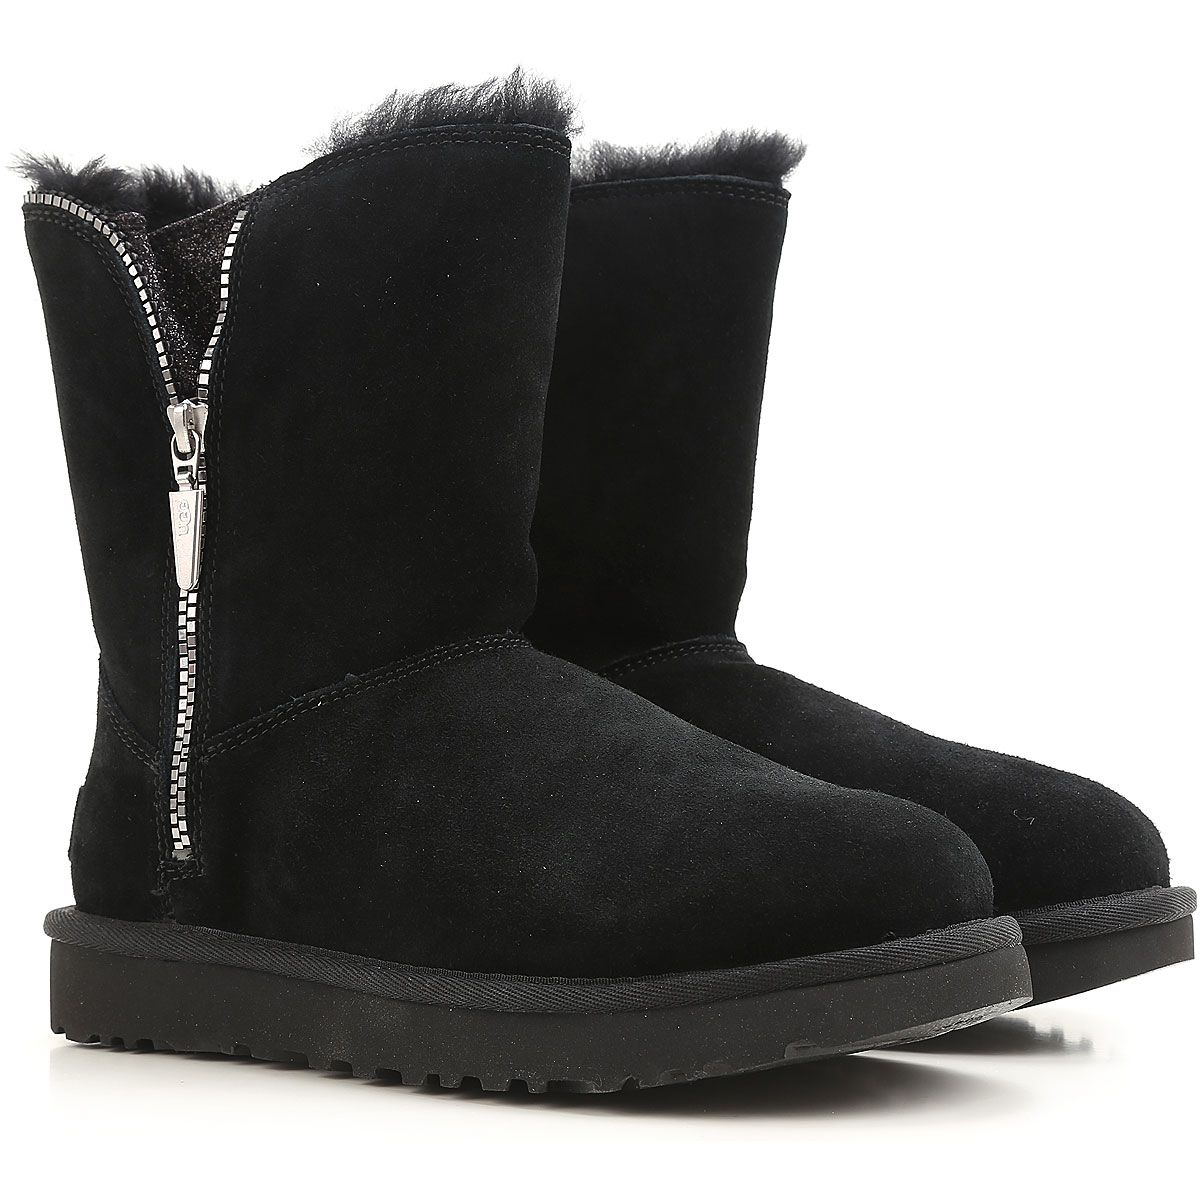 9d472305339 Womens Shoes UGG, Style code: marice-1019633-black | women shoes ...